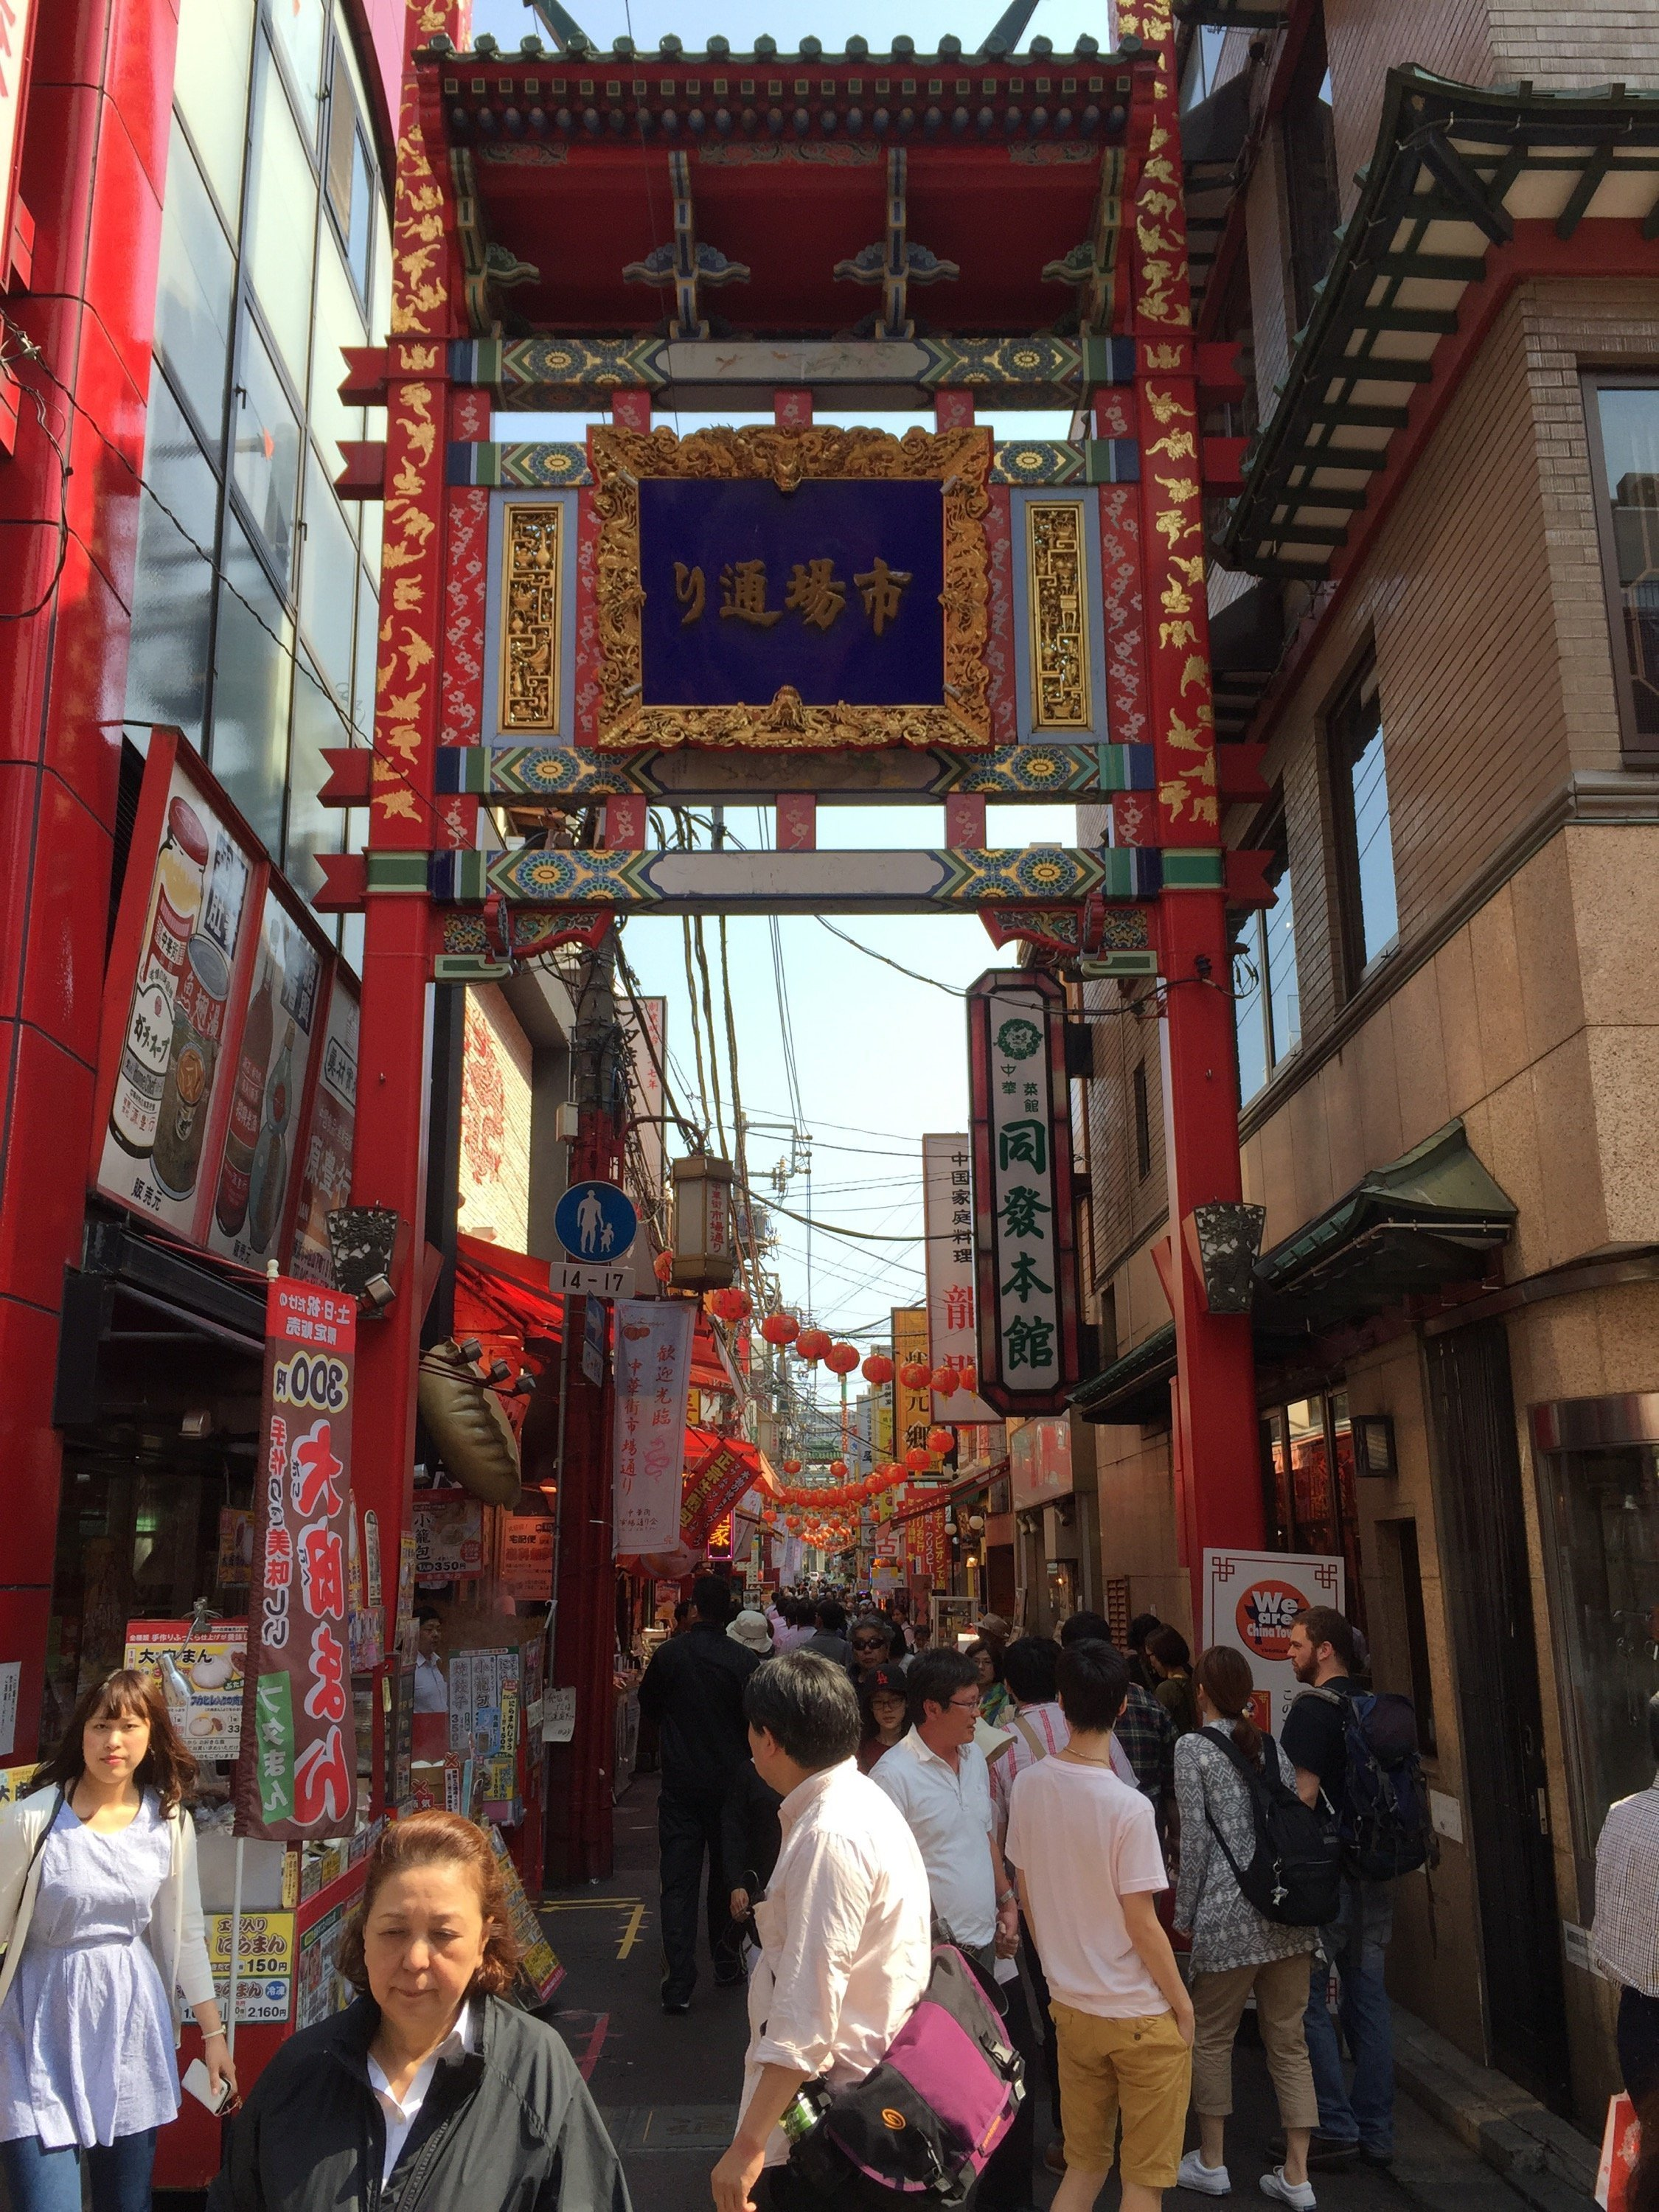 One of many side streets in Chinatown